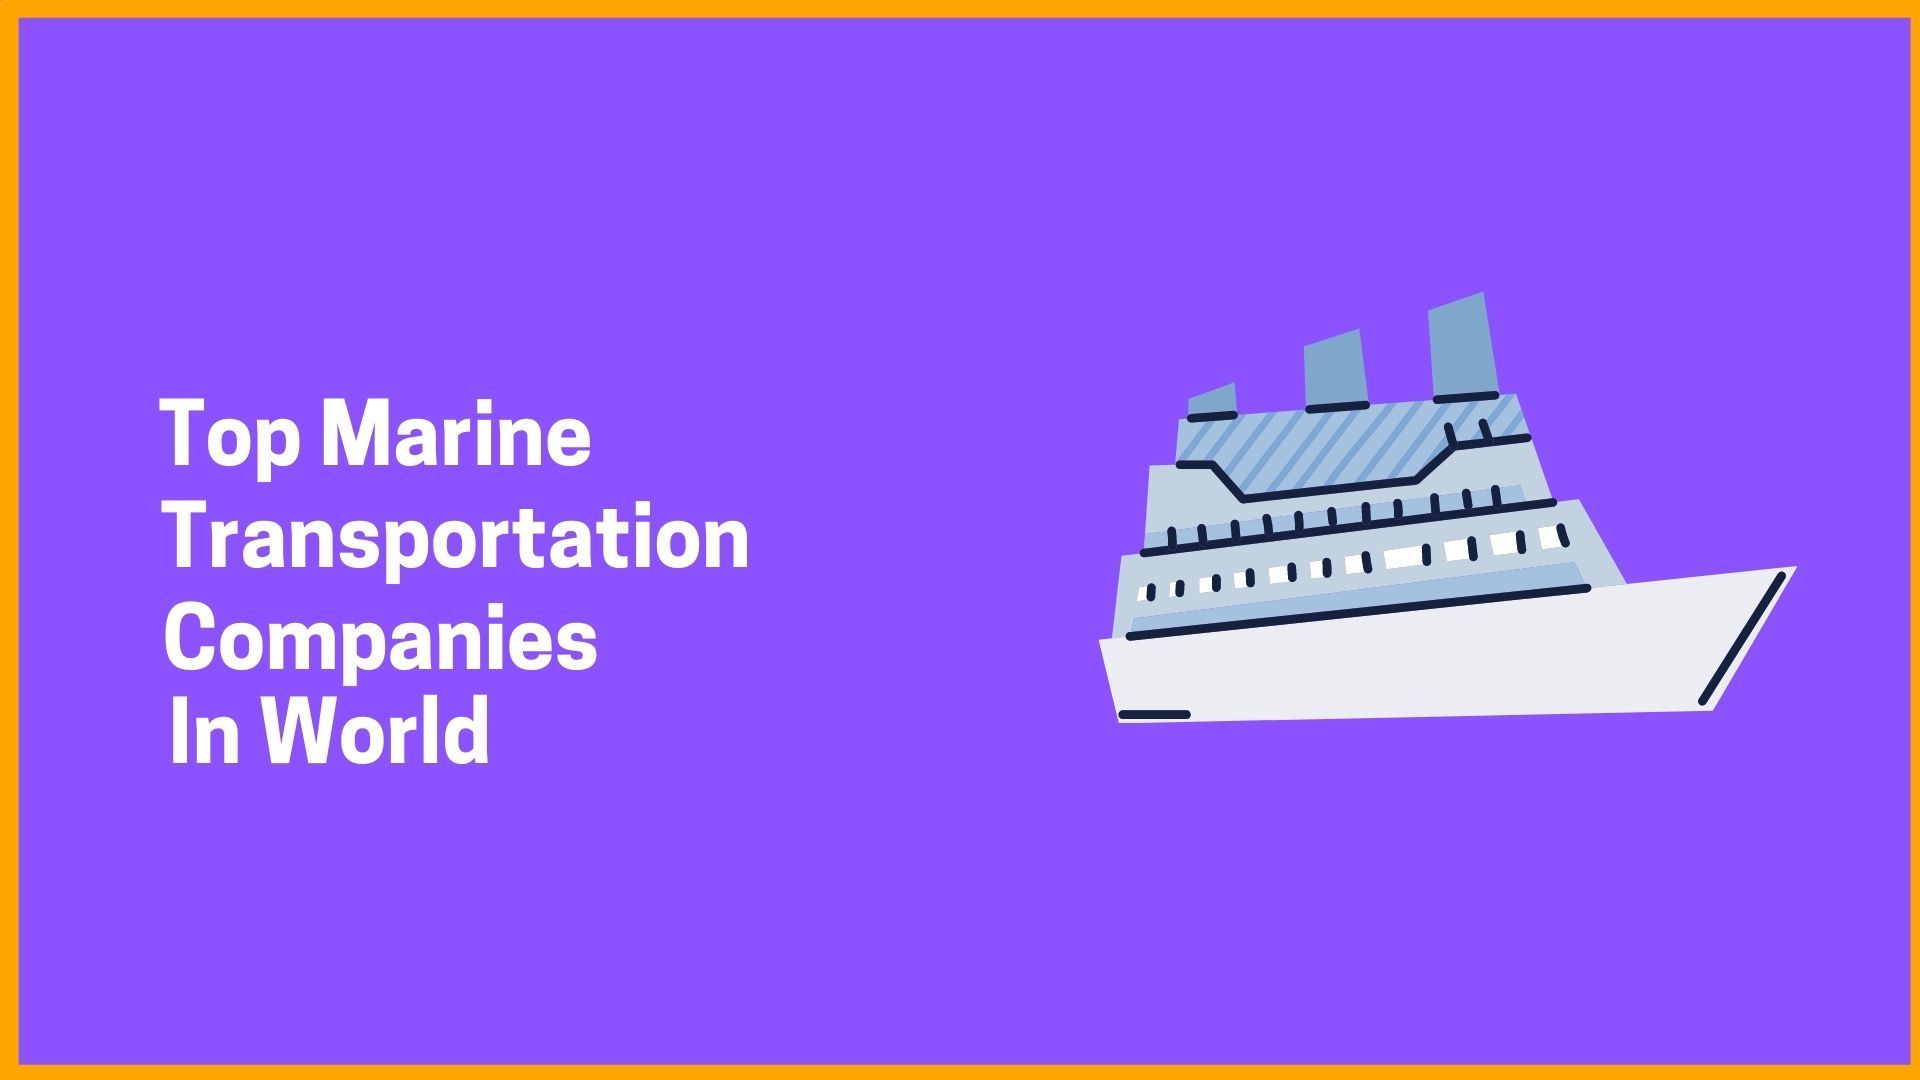 Top Marine Transportation Companies In World